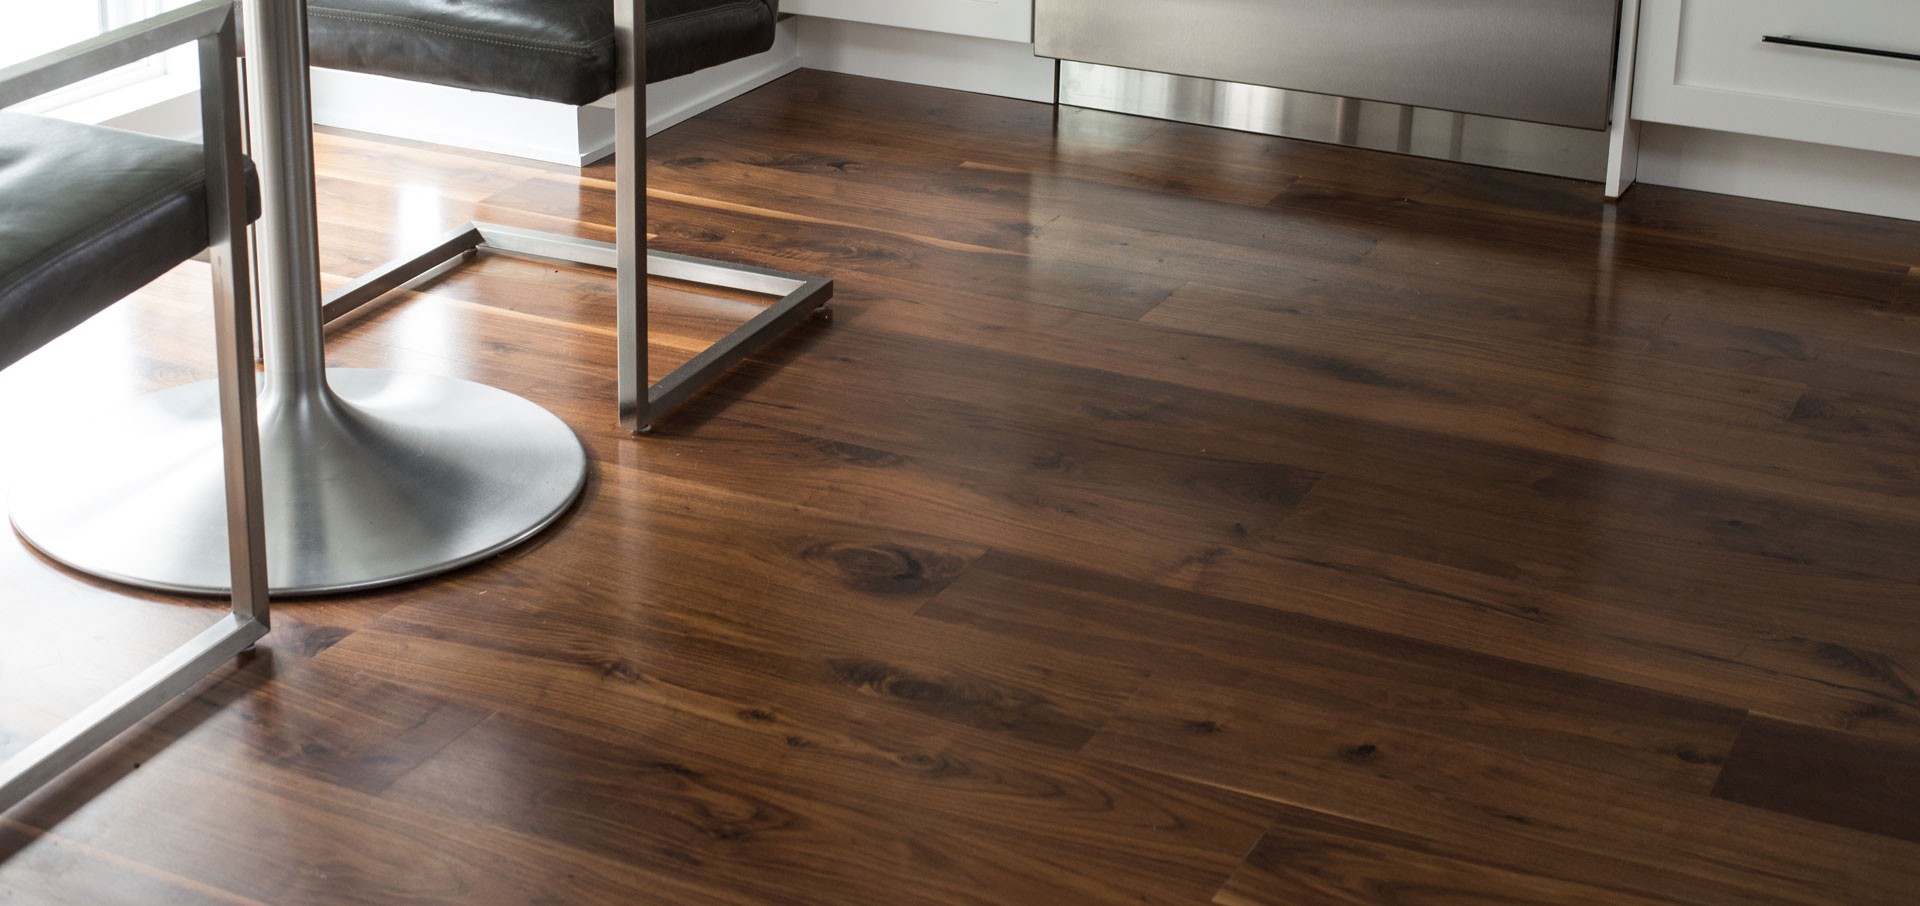 """hardwood floor refinishing ann arbor of craftsmanship aˆ a¾ 3 ply wide plank engineered hardwood flooring aˆ v3 in stablecora""""¢ technology"""